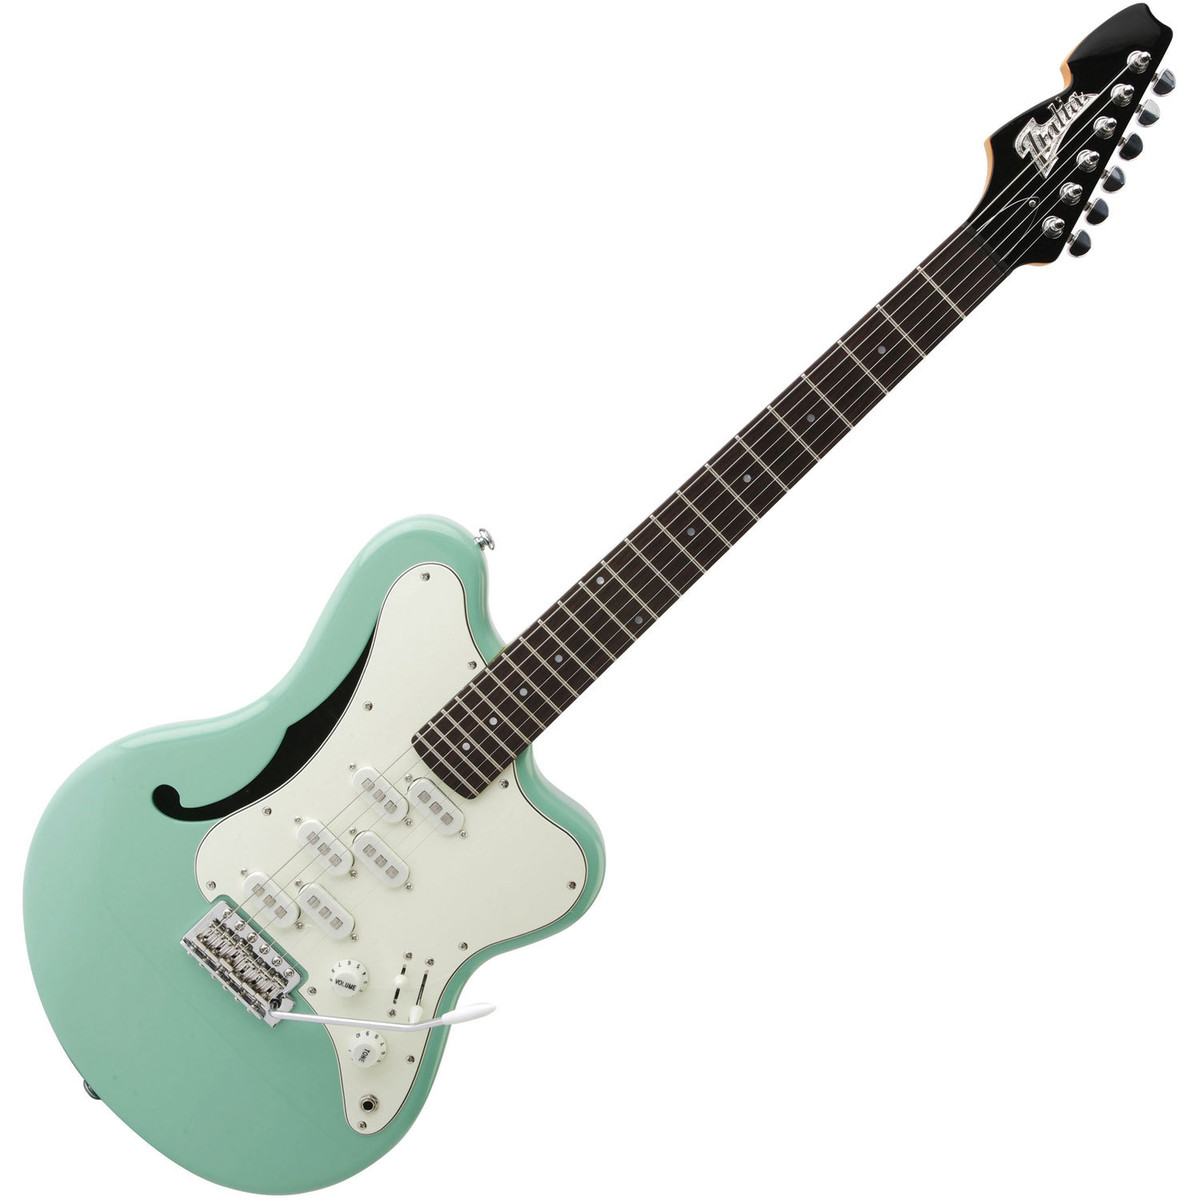 italia imola 6 semi hollow body electric guitar metallic green at gear4music. Black Bedroom Furniture Sets. Home Design Ideas